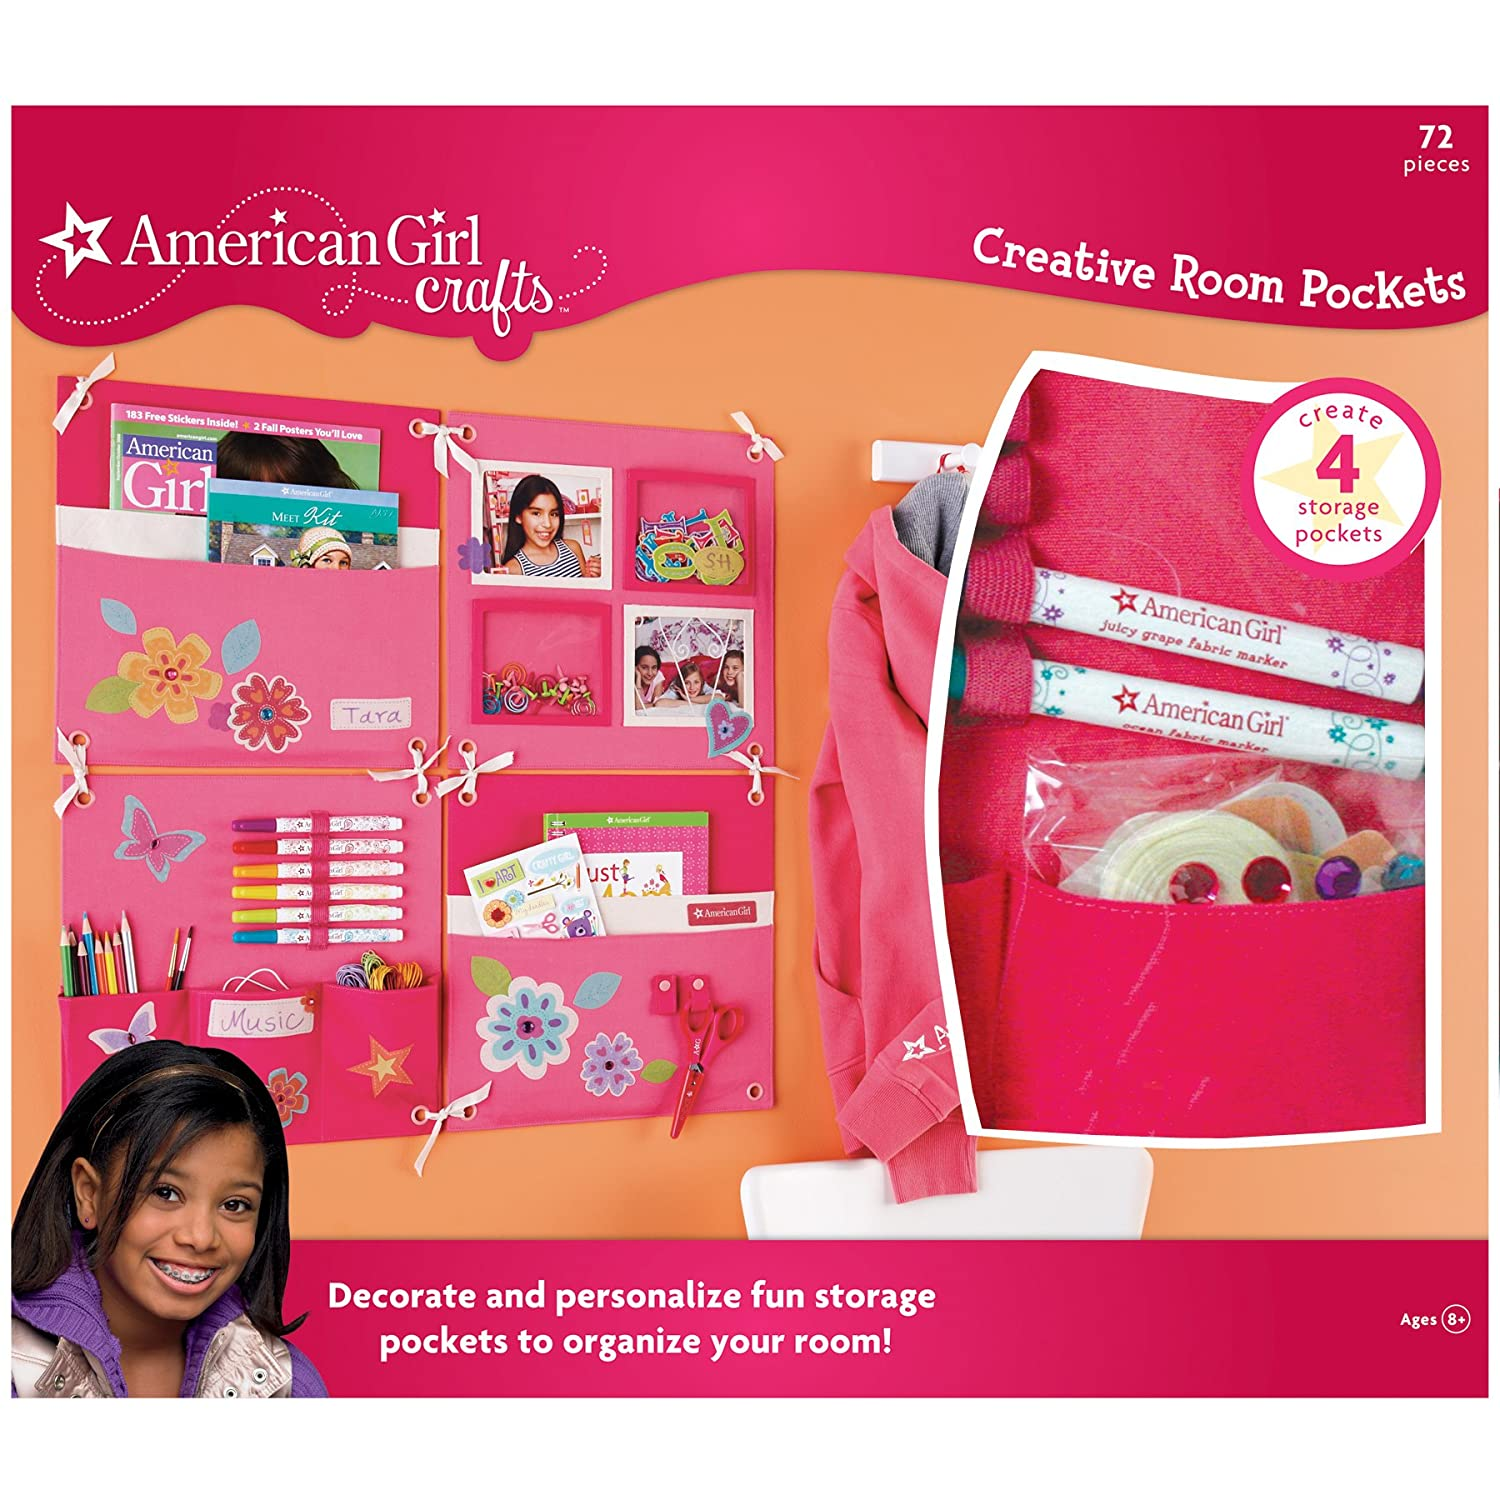 American Girl Crafts Girls Room Decoration and Organization Storage Pockets, 72pc